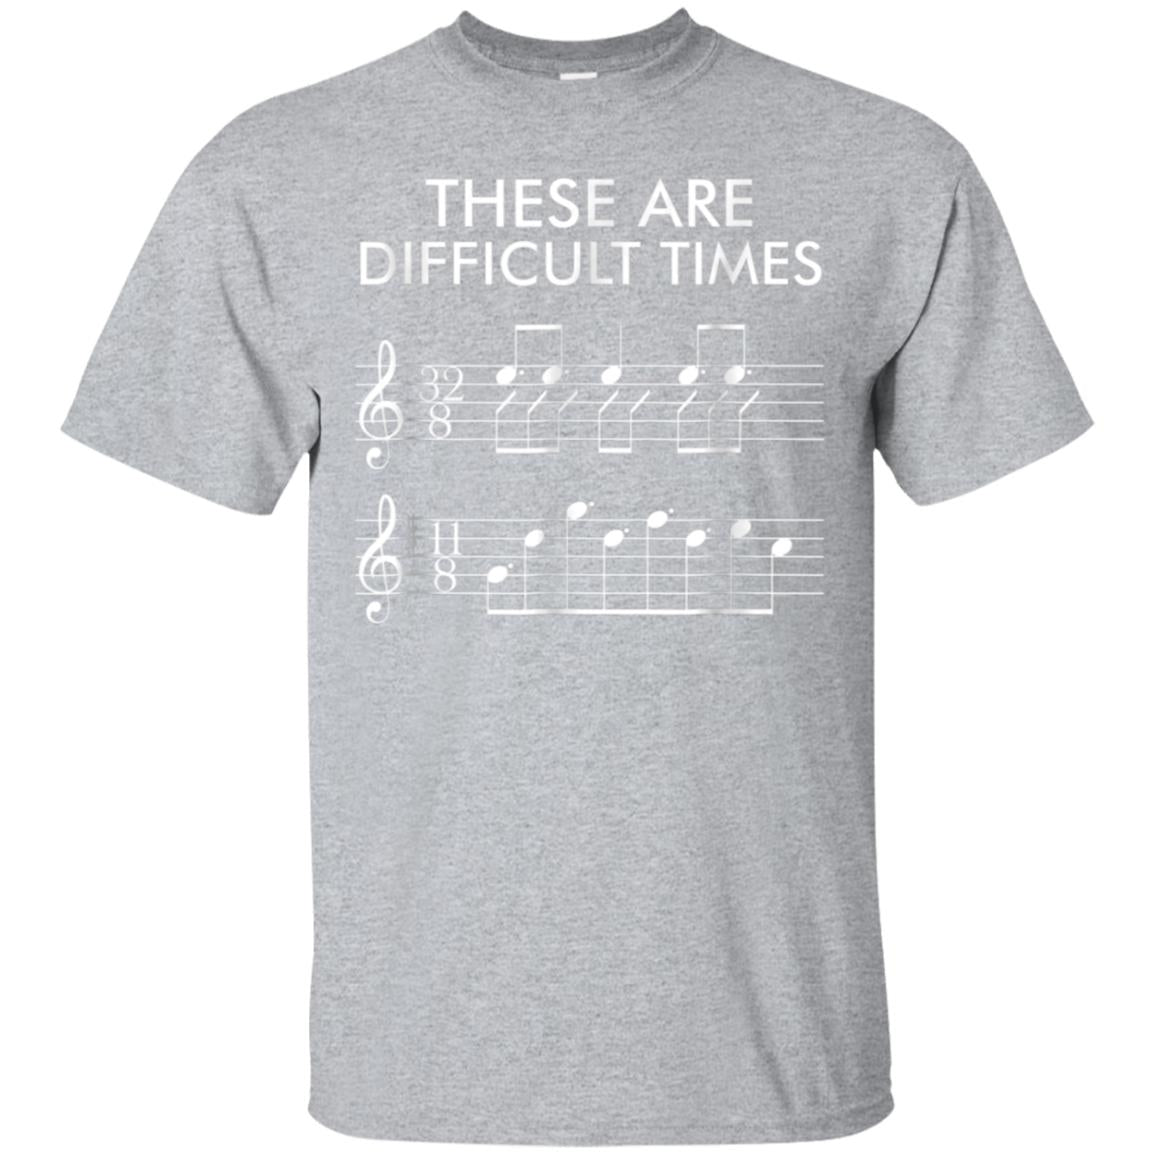 These Are Difficult Times - Funny Music T-shirt 99promocode